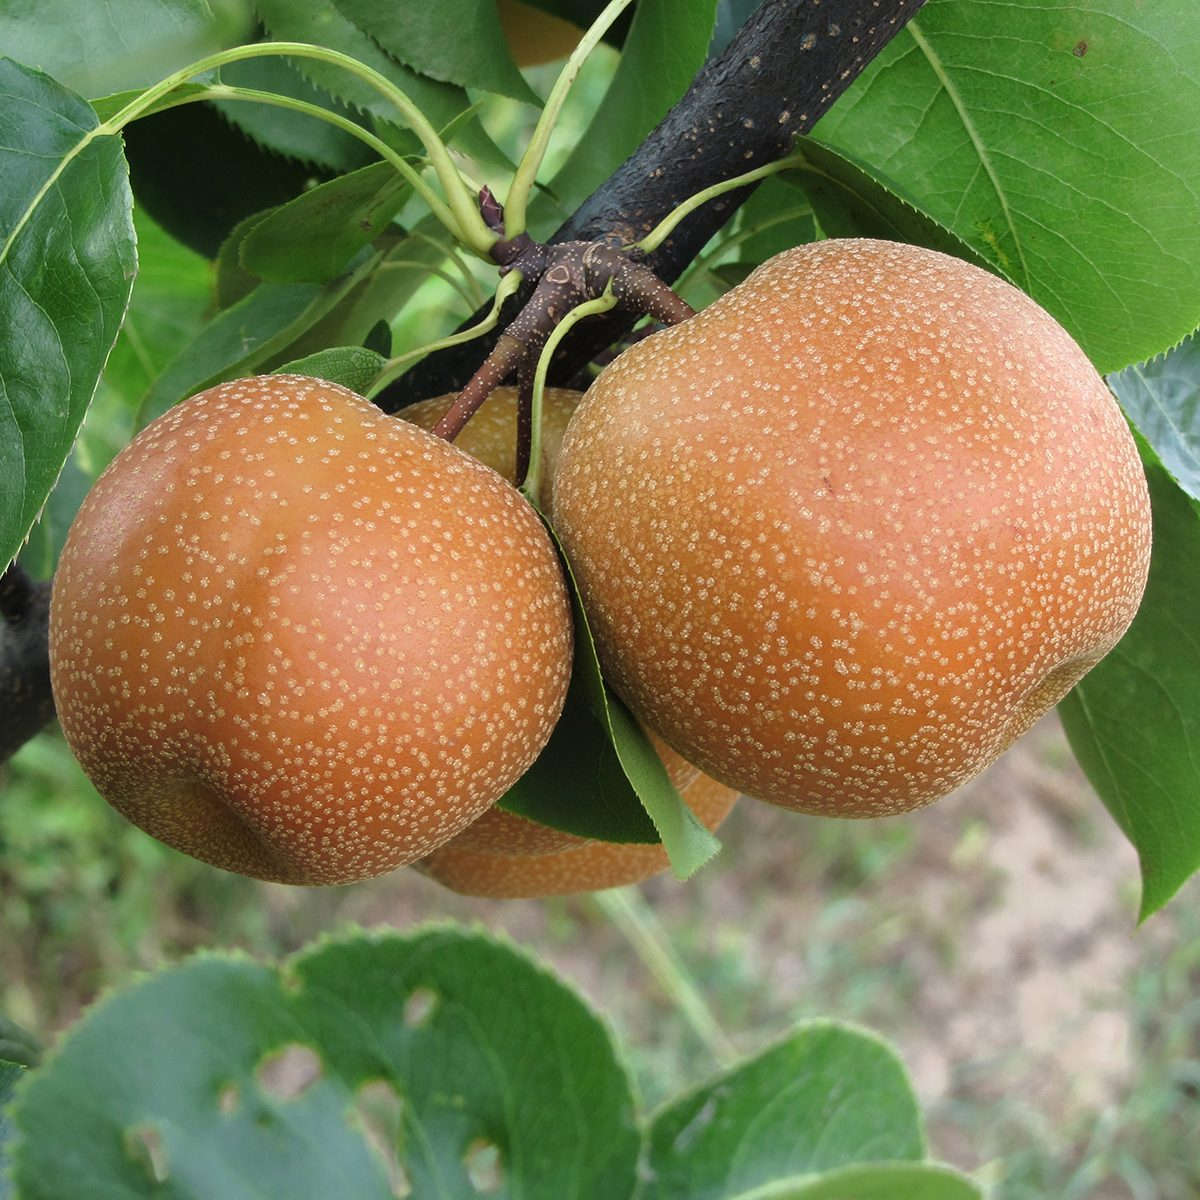 Nashi pears known also as apple pears hanging on the tree . Pyrus pyrifolia is a species of pear tree of the Rosaceae family native of East Asia